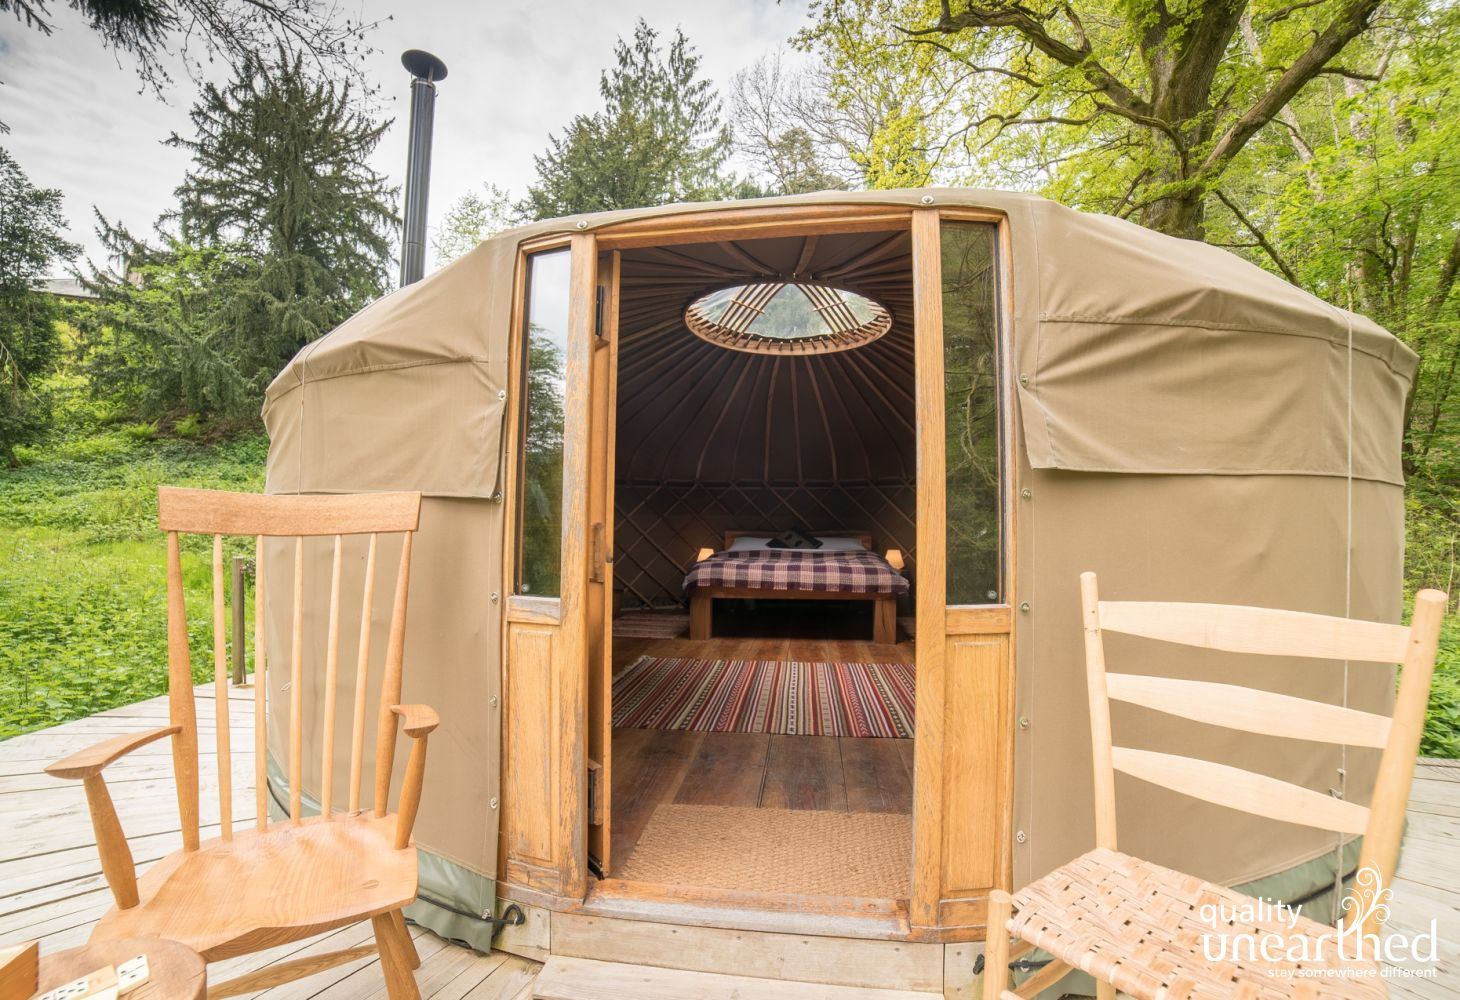 A peek through the classic low door of the yurt shows the crown and the star gazing potential